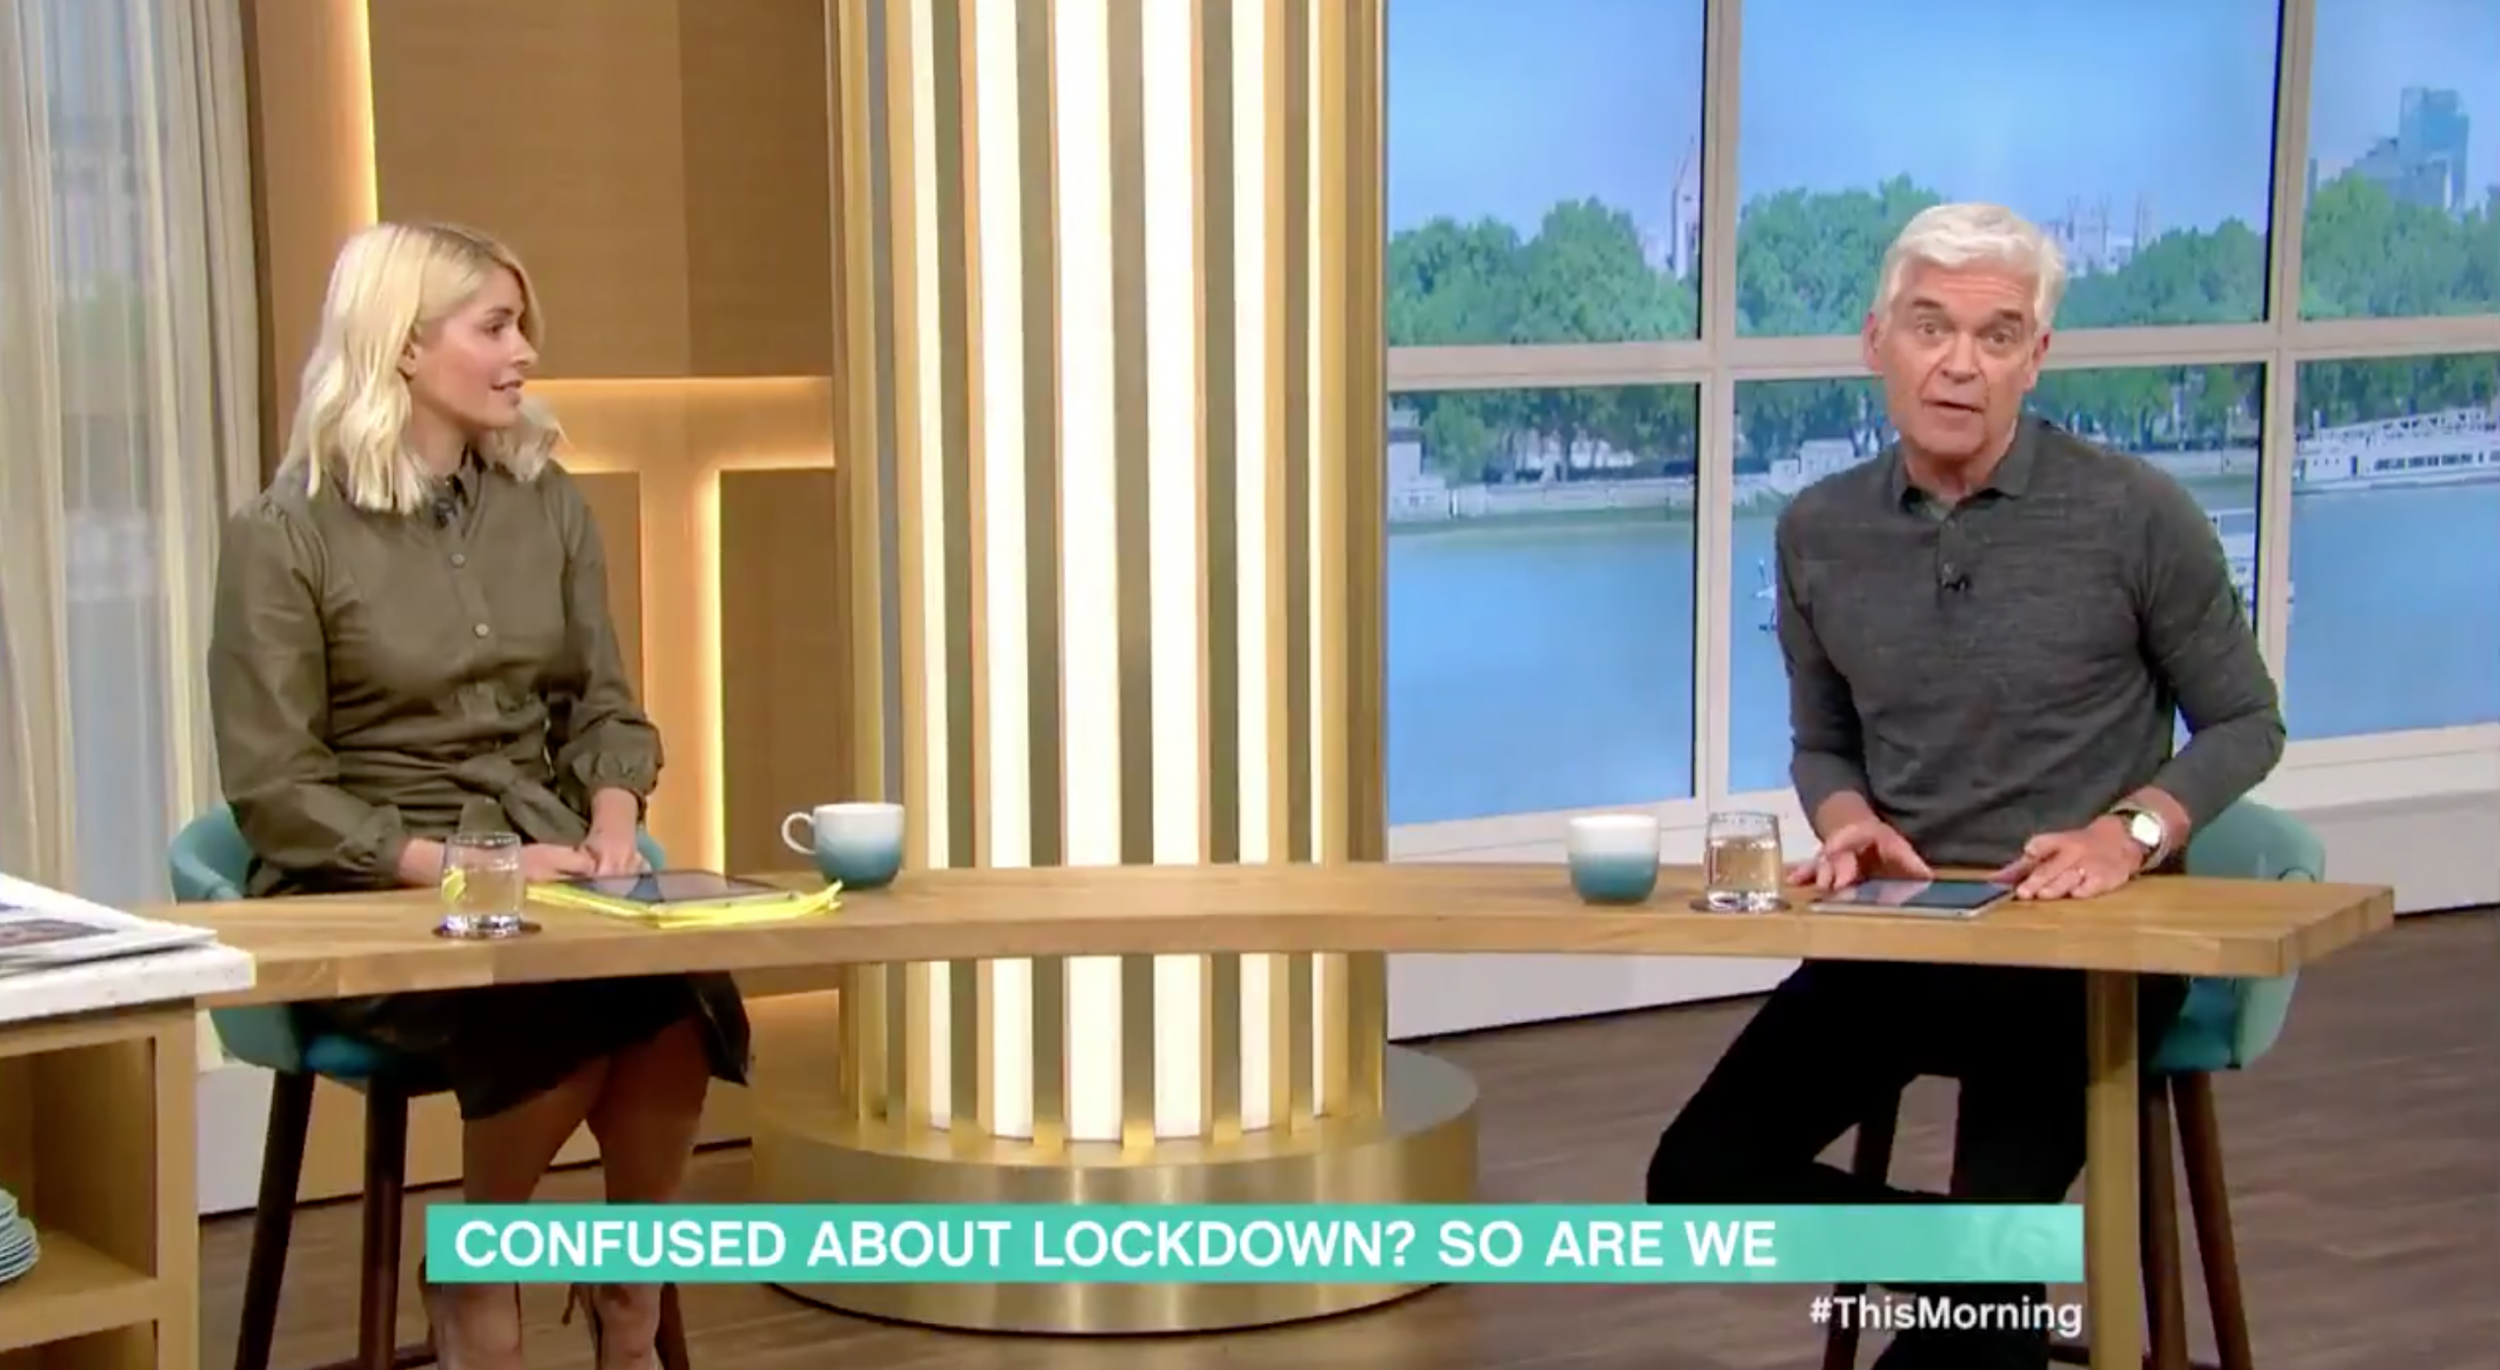 Now Phillip Schofield is attacking his lockdown exit plan on This Morning, Boris Johnson really is in trouble